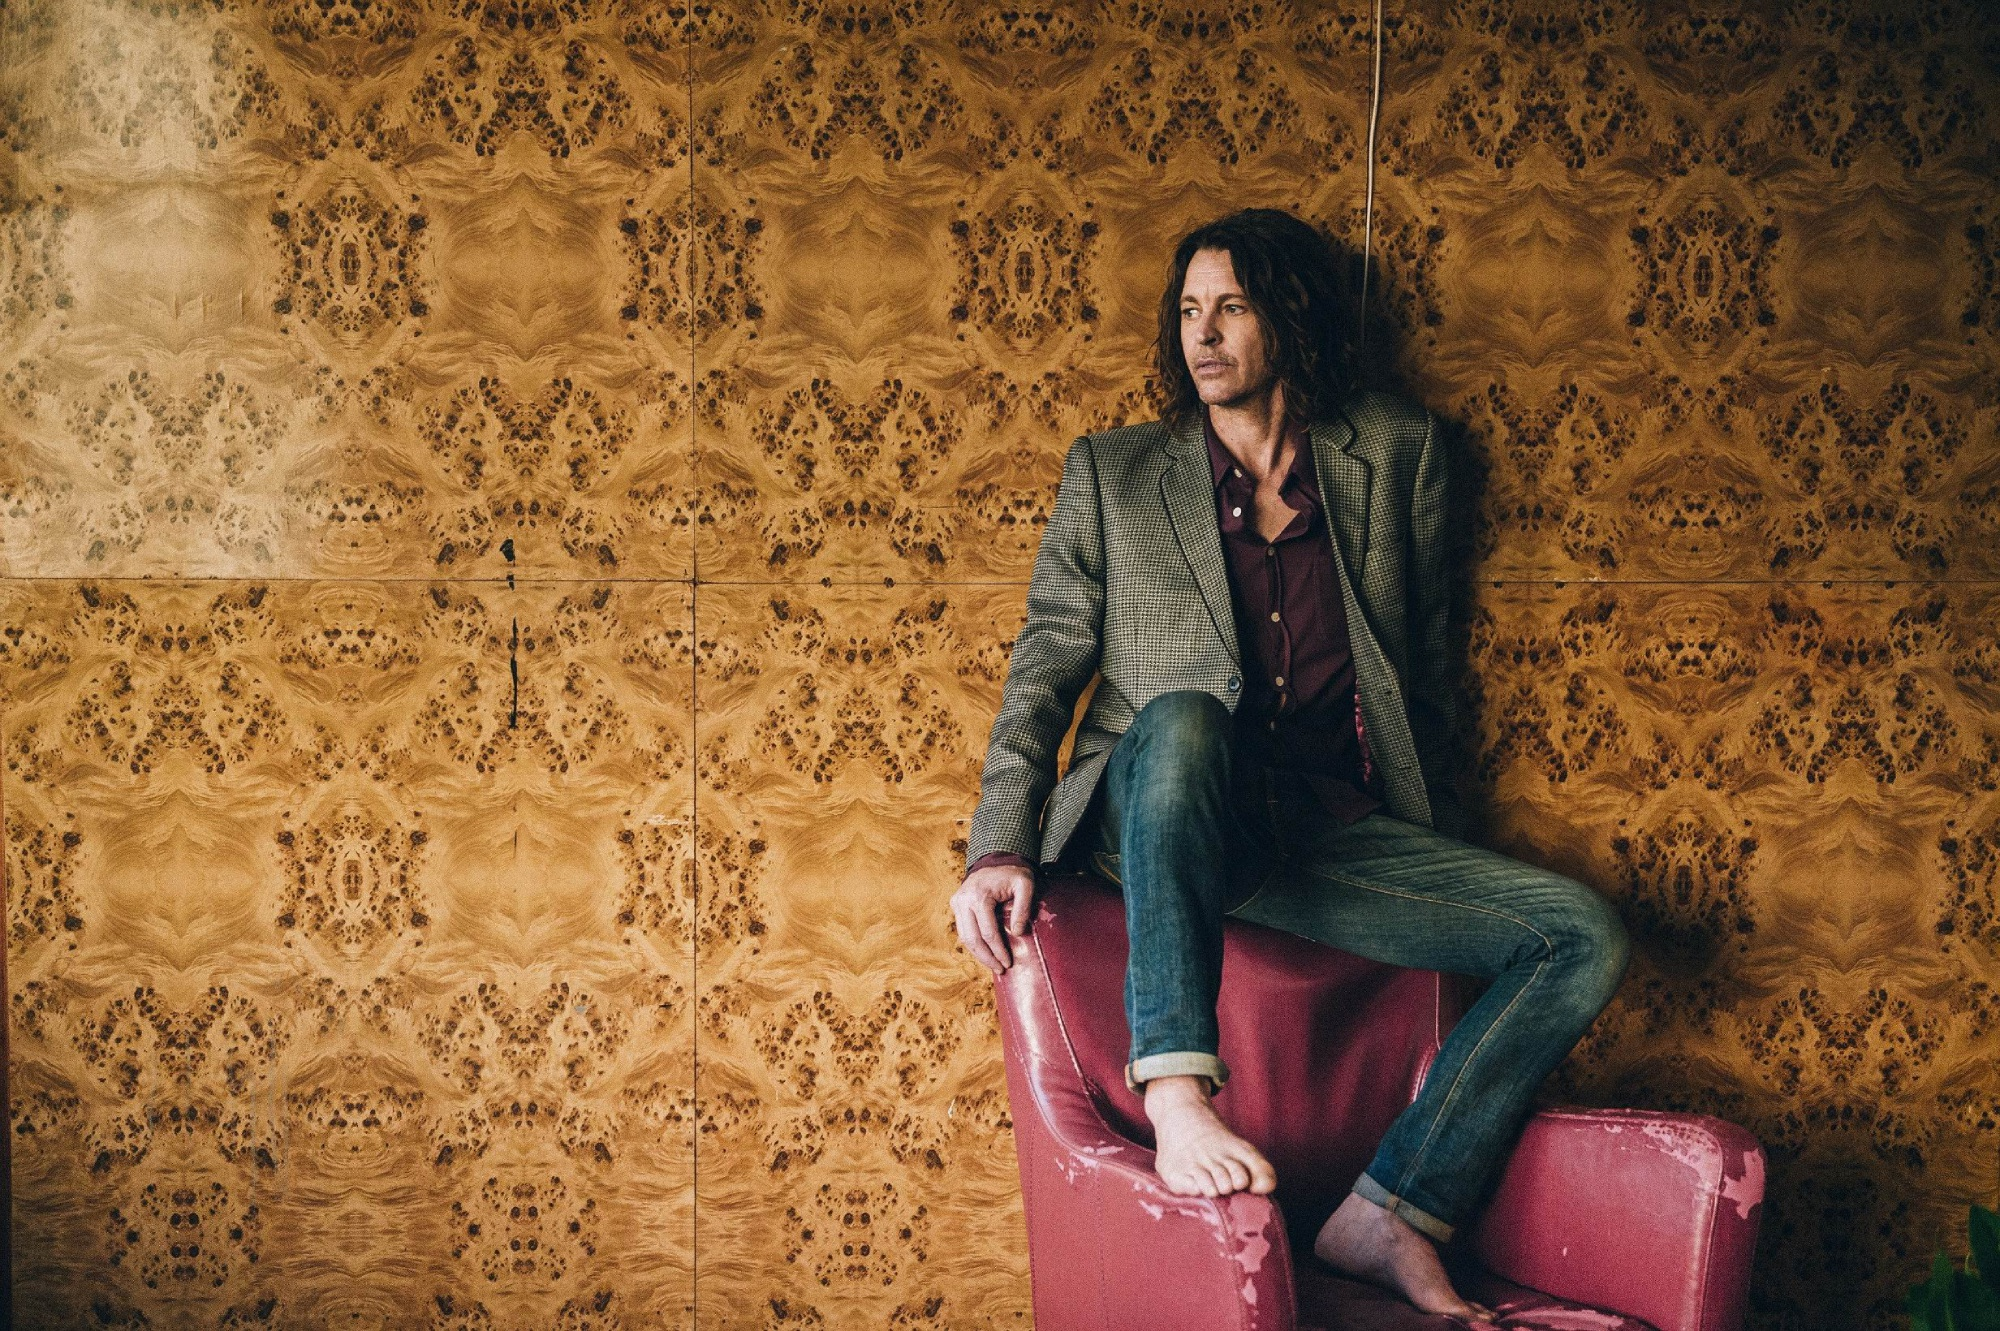 Bernard Fanning will be part of the Fremantle Festival, which runs from October 28 to November 6.